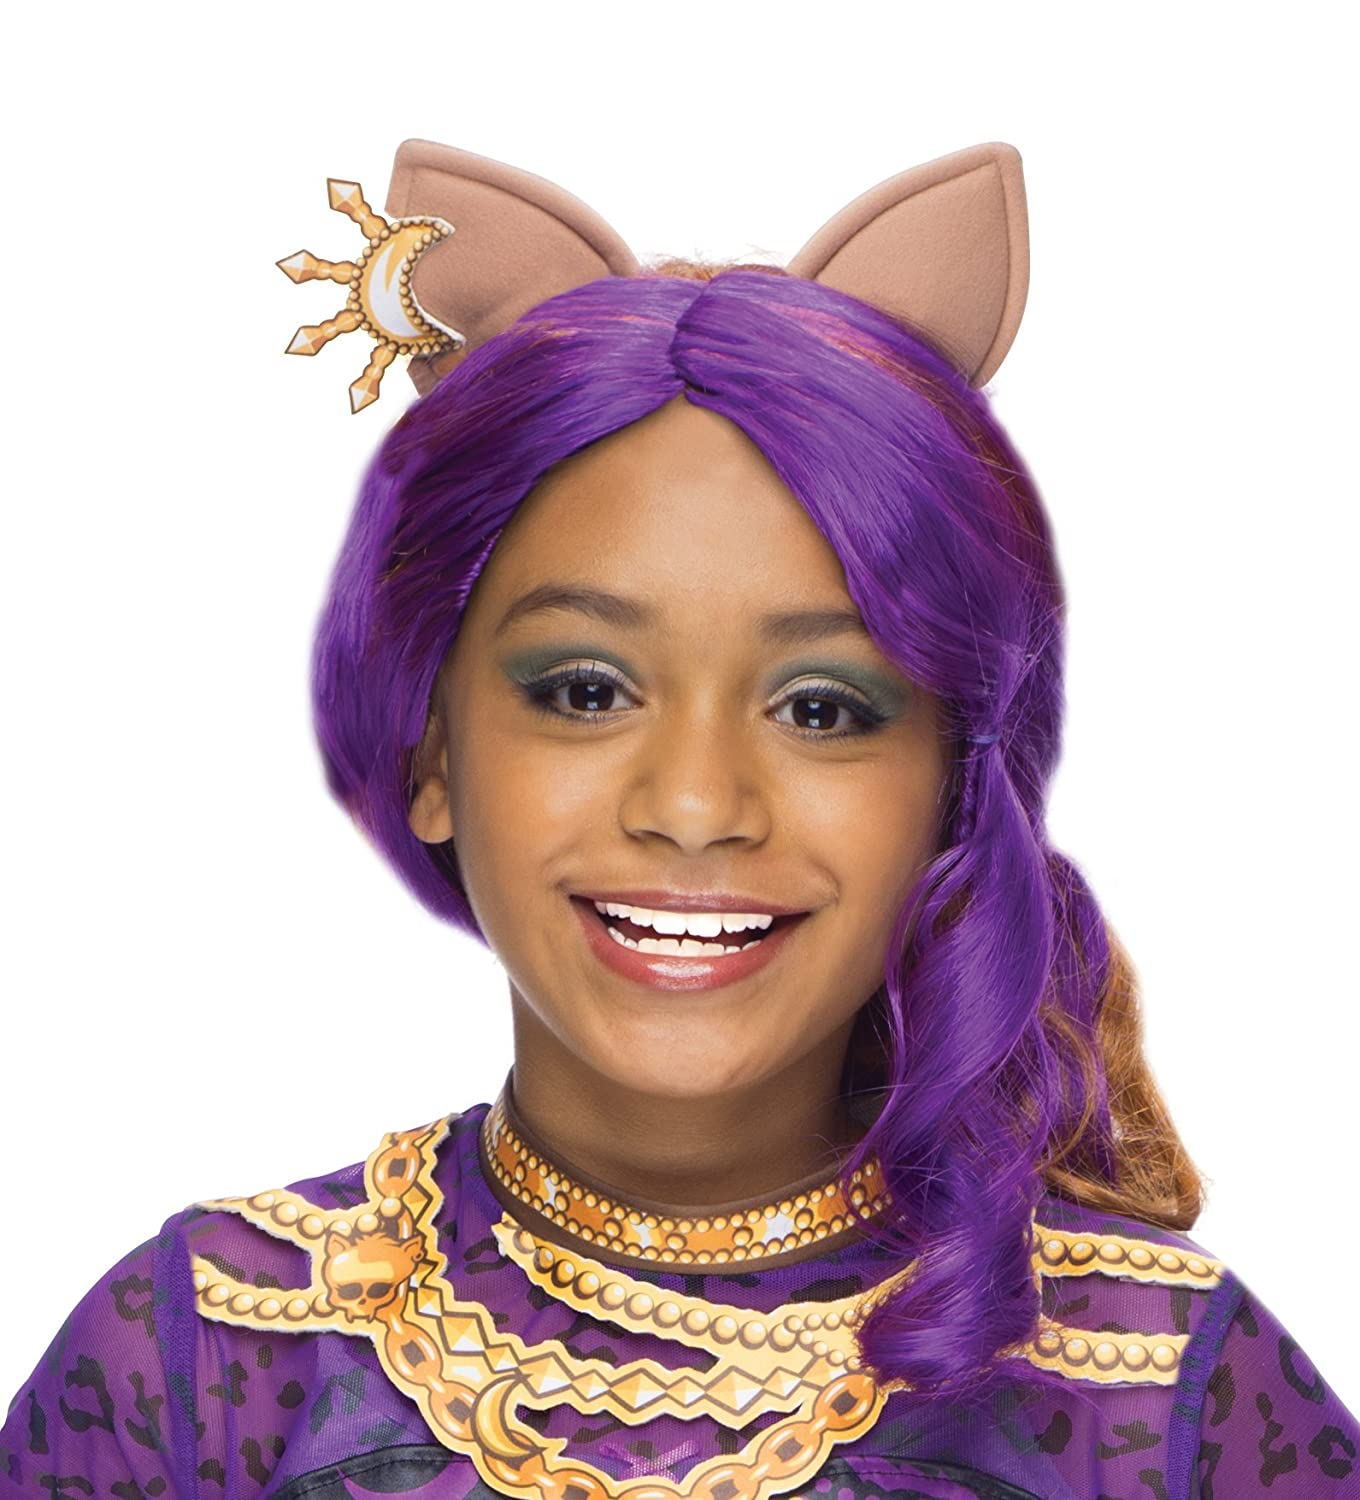 Amazon.com Rubies Monster High Clawdeen Wolf Child Costume Wig Toys u0026 Games  sc 1 st  Amazon.com & Amazon.com: Rubies Monster High Clawdeen Wolf Child Costume Wig ...